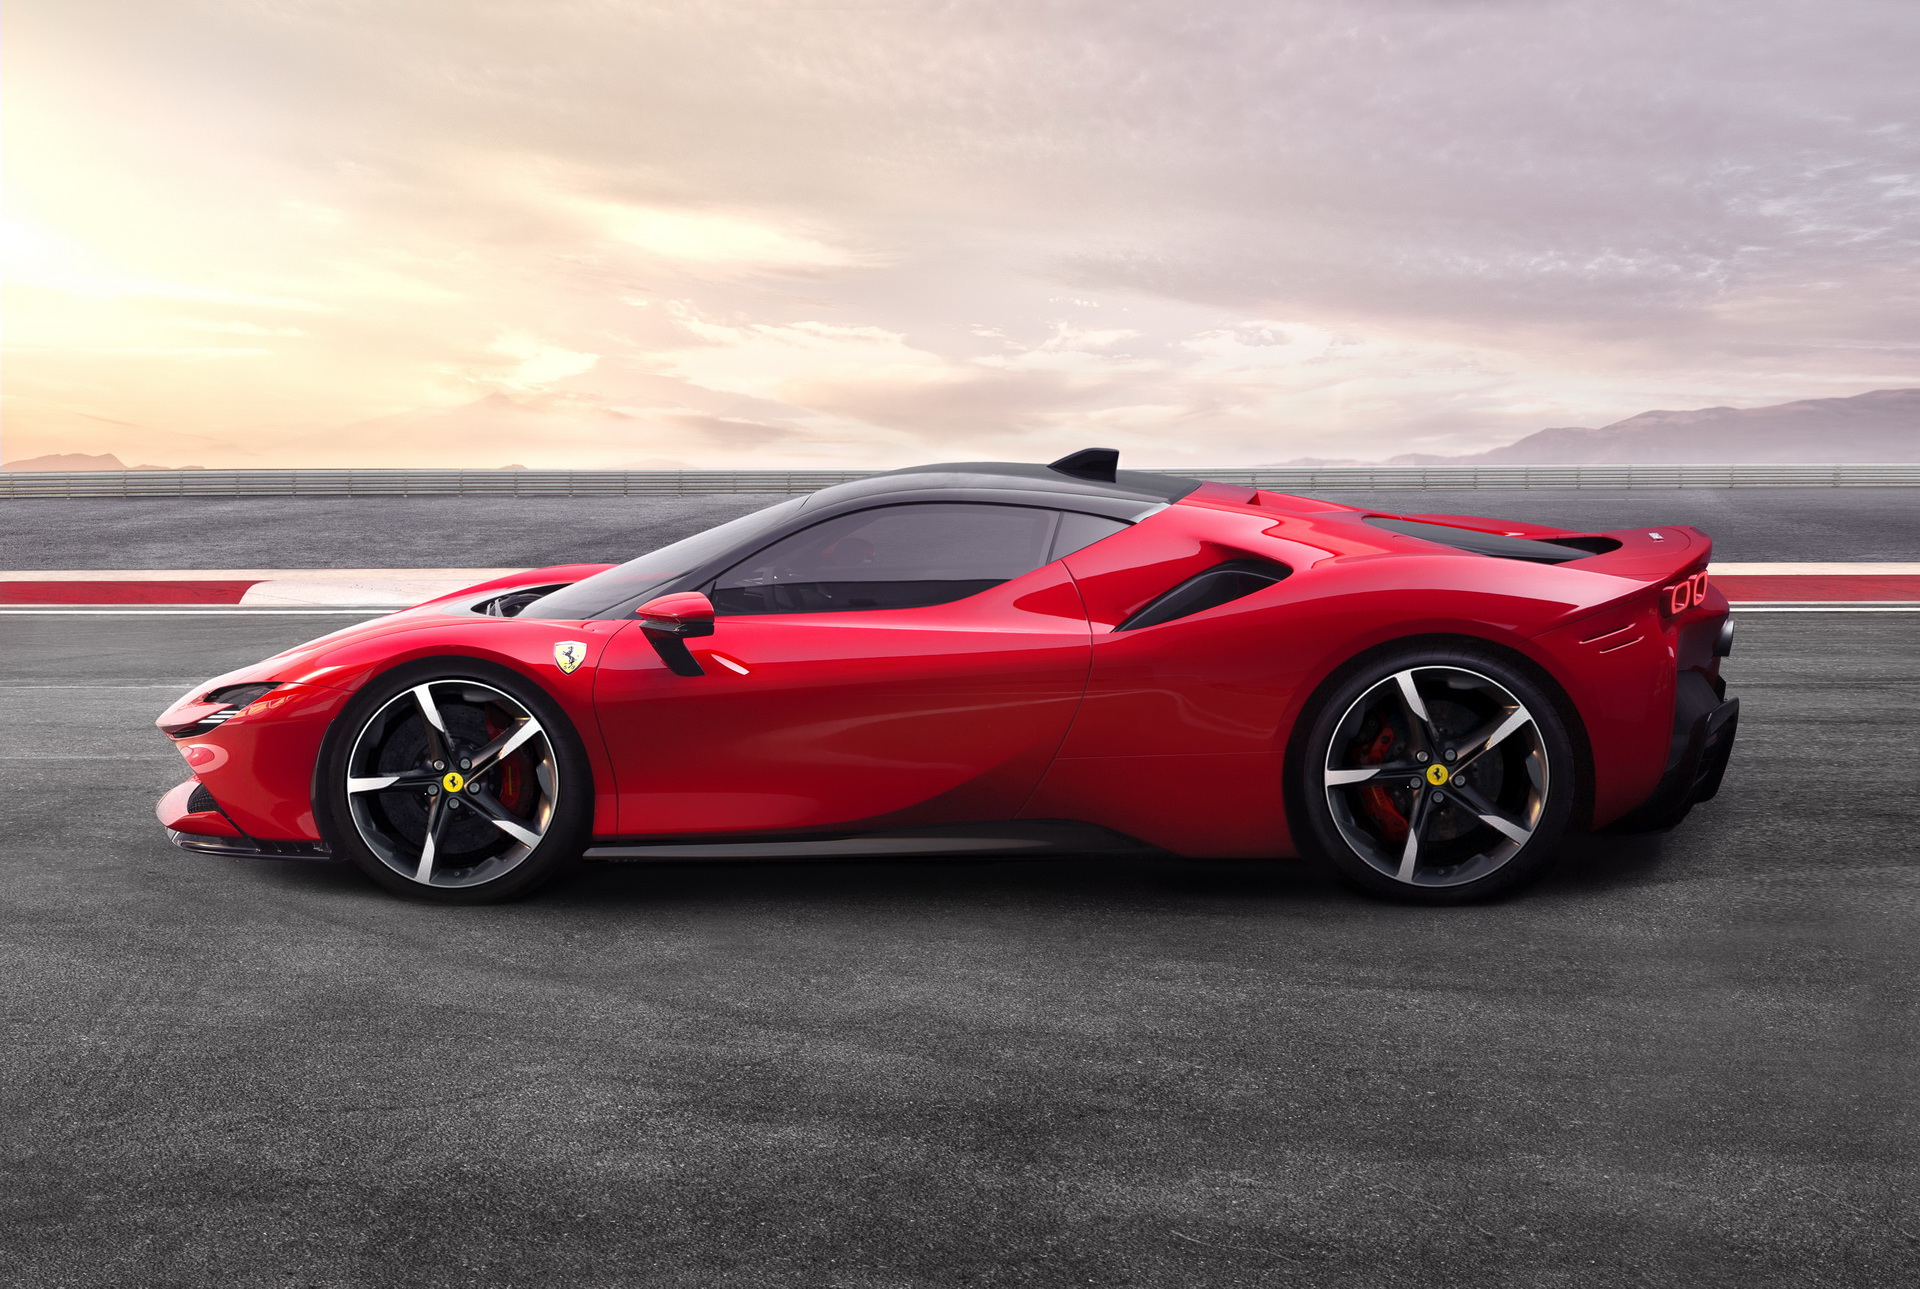 ferrari-says-first-ev-will-pioneer-new-tech-2